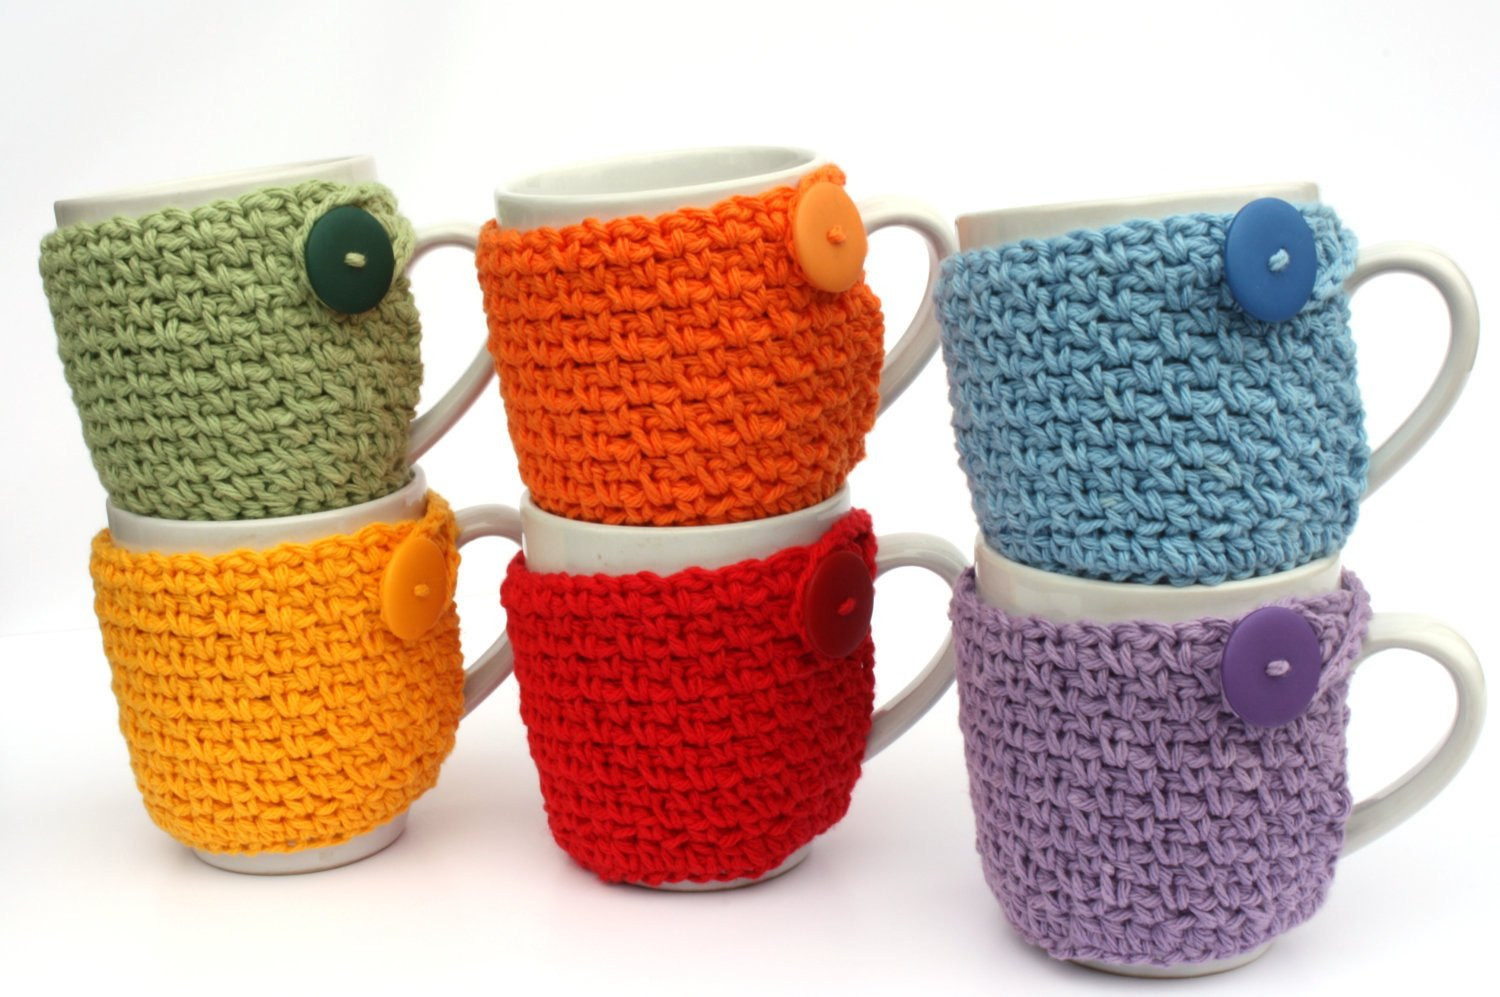 Crochet Coffee Cup Cozy Lovely Coffee Cup Cozy Crochet Cup Sleeve You Pick the by Sweetbriers Of Crochet Coffee Cup Cozy Inspirational Crochet Coffee Cup Cozy Pattern Pdf Download Coffee Cup Cozy